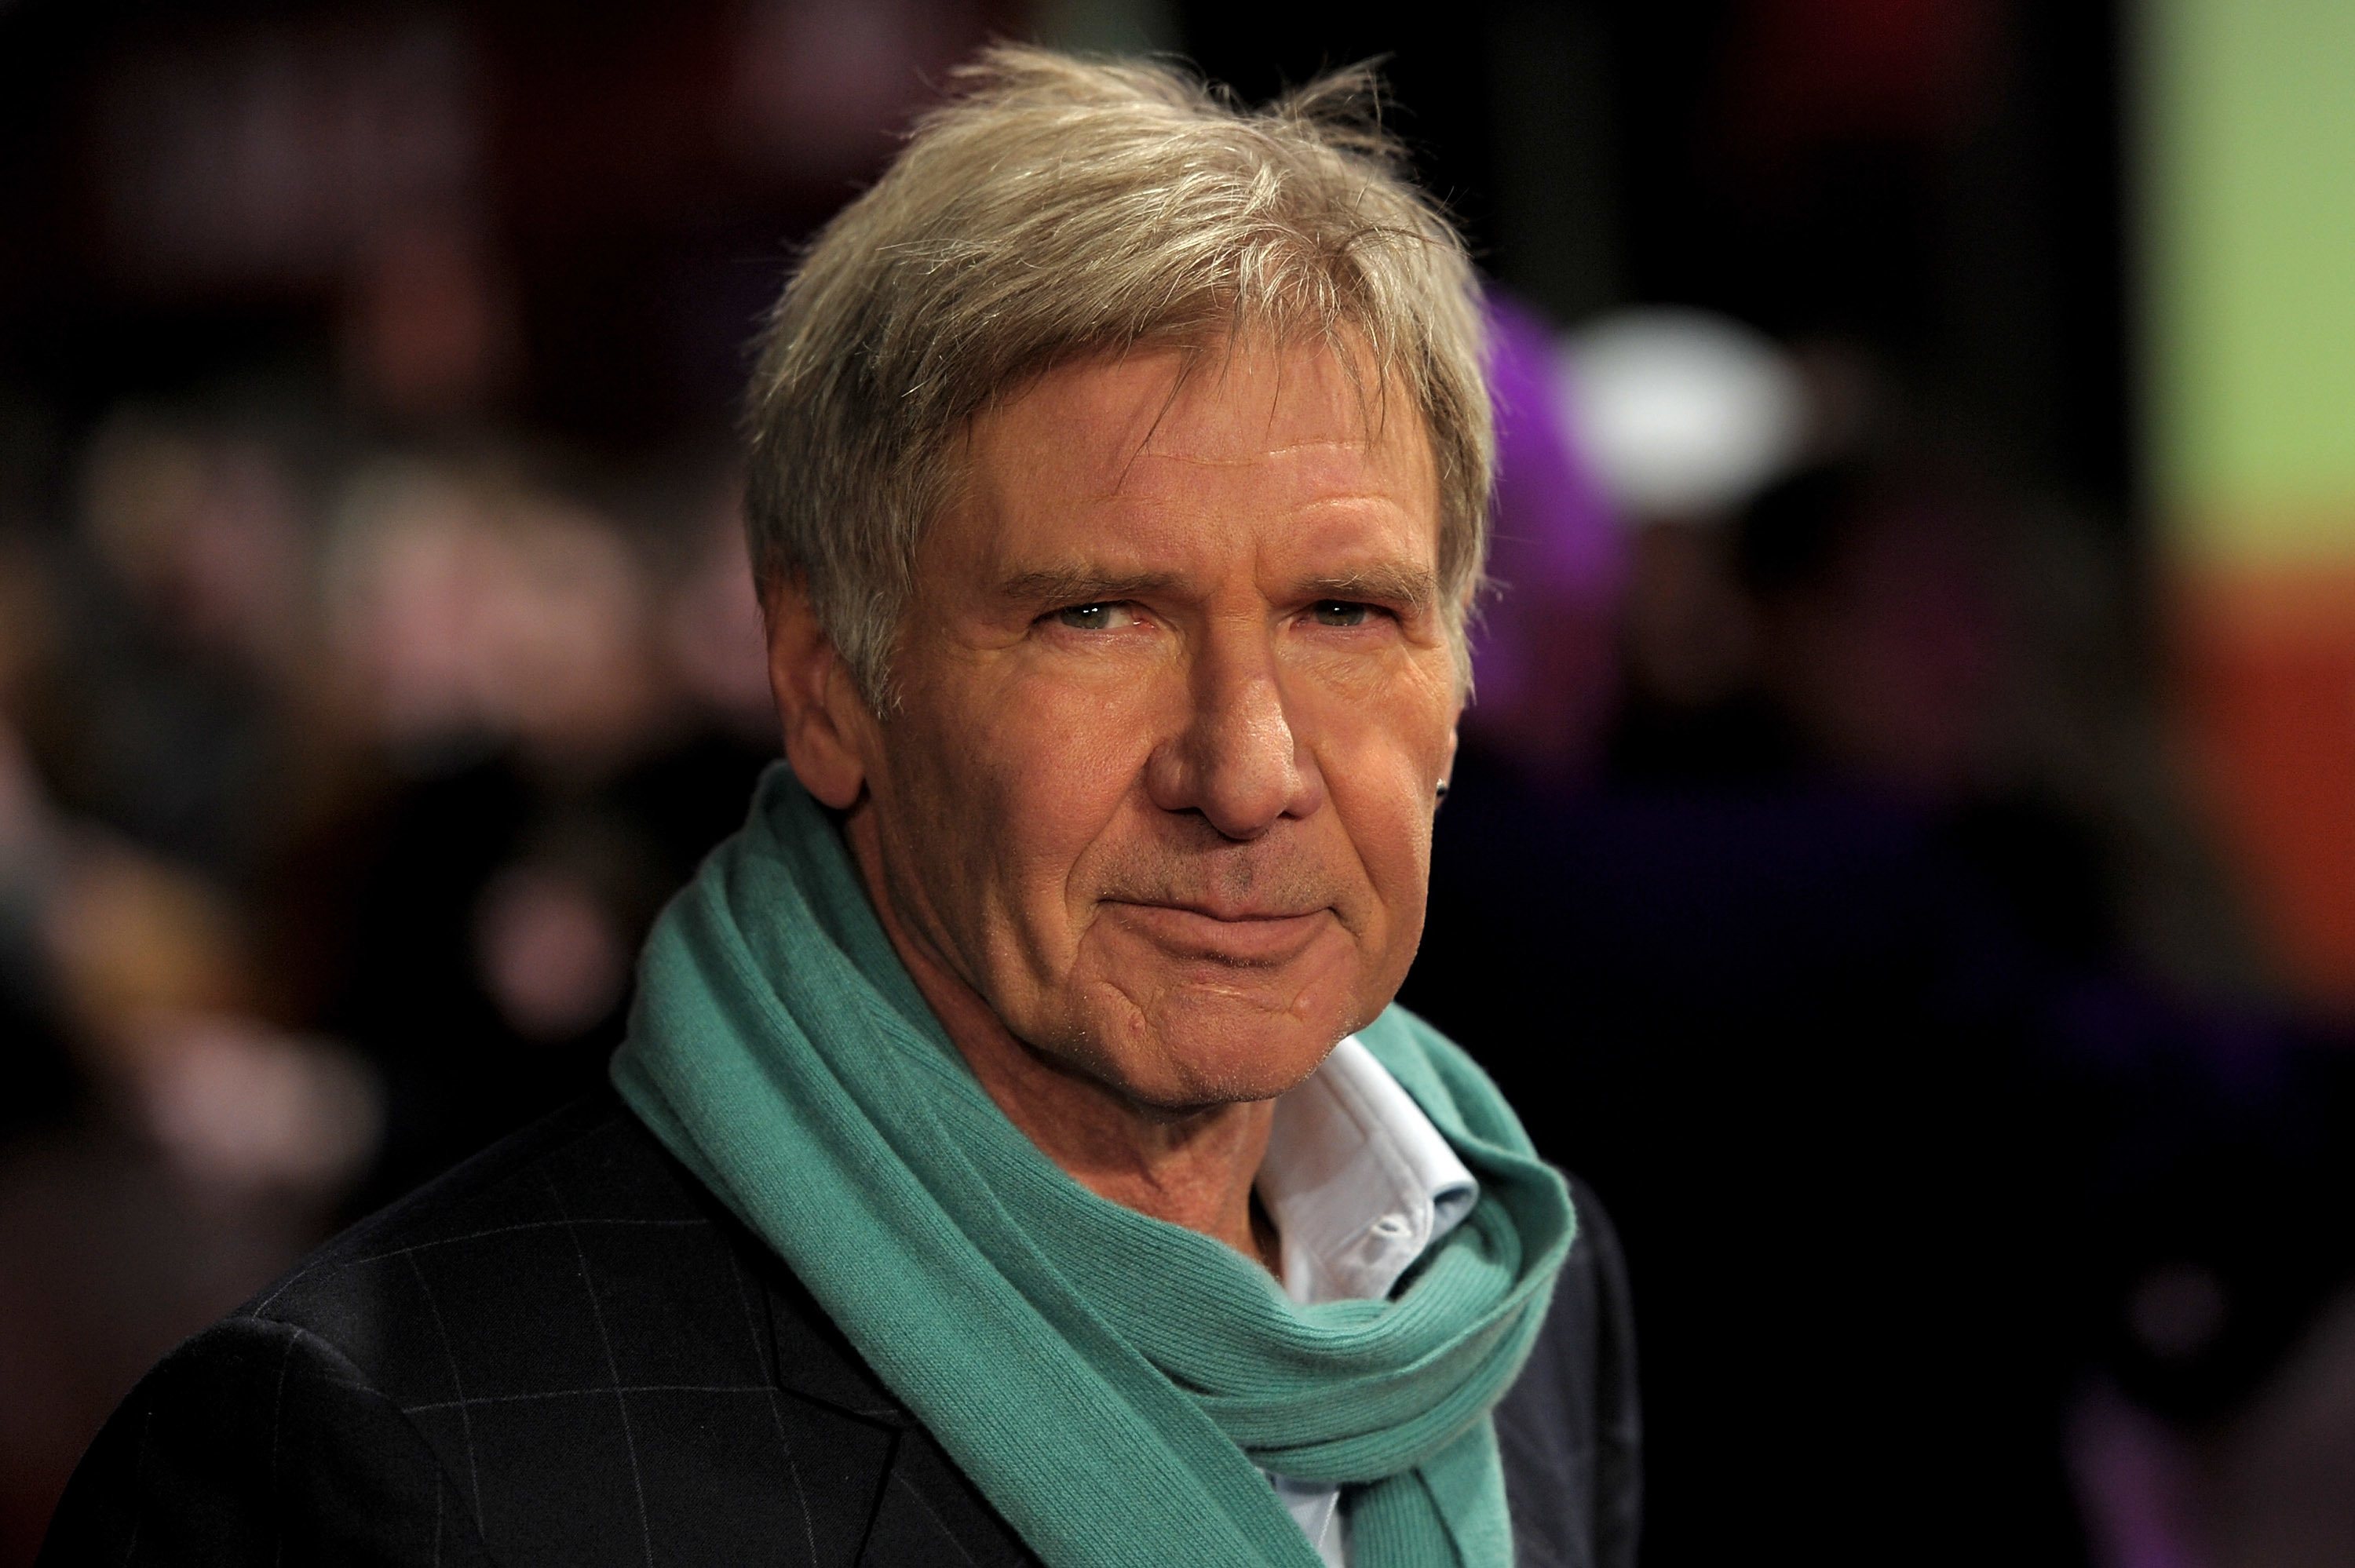 Harrison Ford talks Star Wars: The Force Awakens, breaking JJ Abrams' back  and meeting Johnny Depp in his Jack Sparrow costume